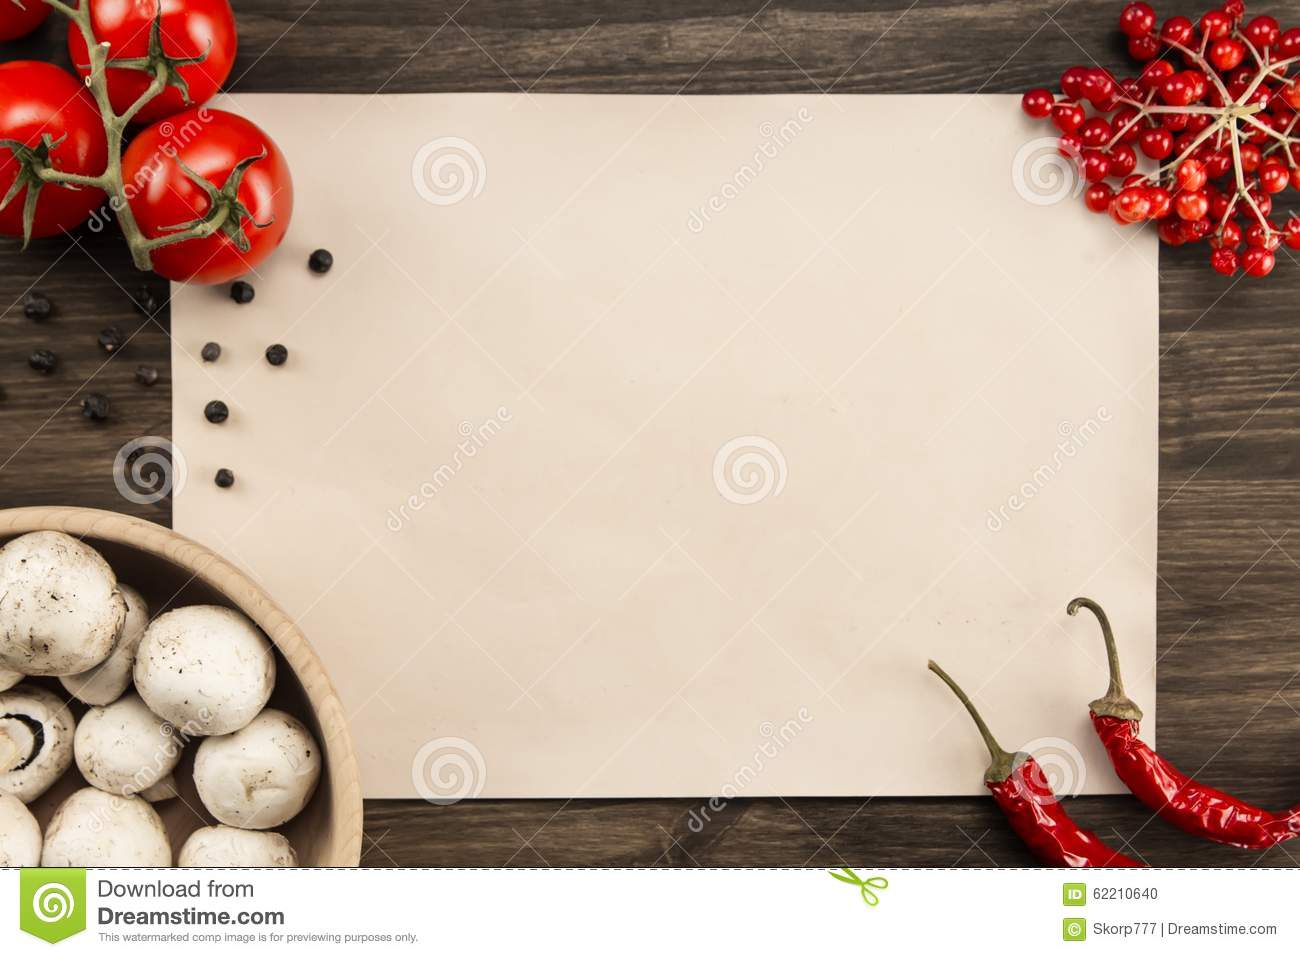 Rustic Cooking Sheet Vintage Paper With Tomatoes Mushrooms Chile Pepper